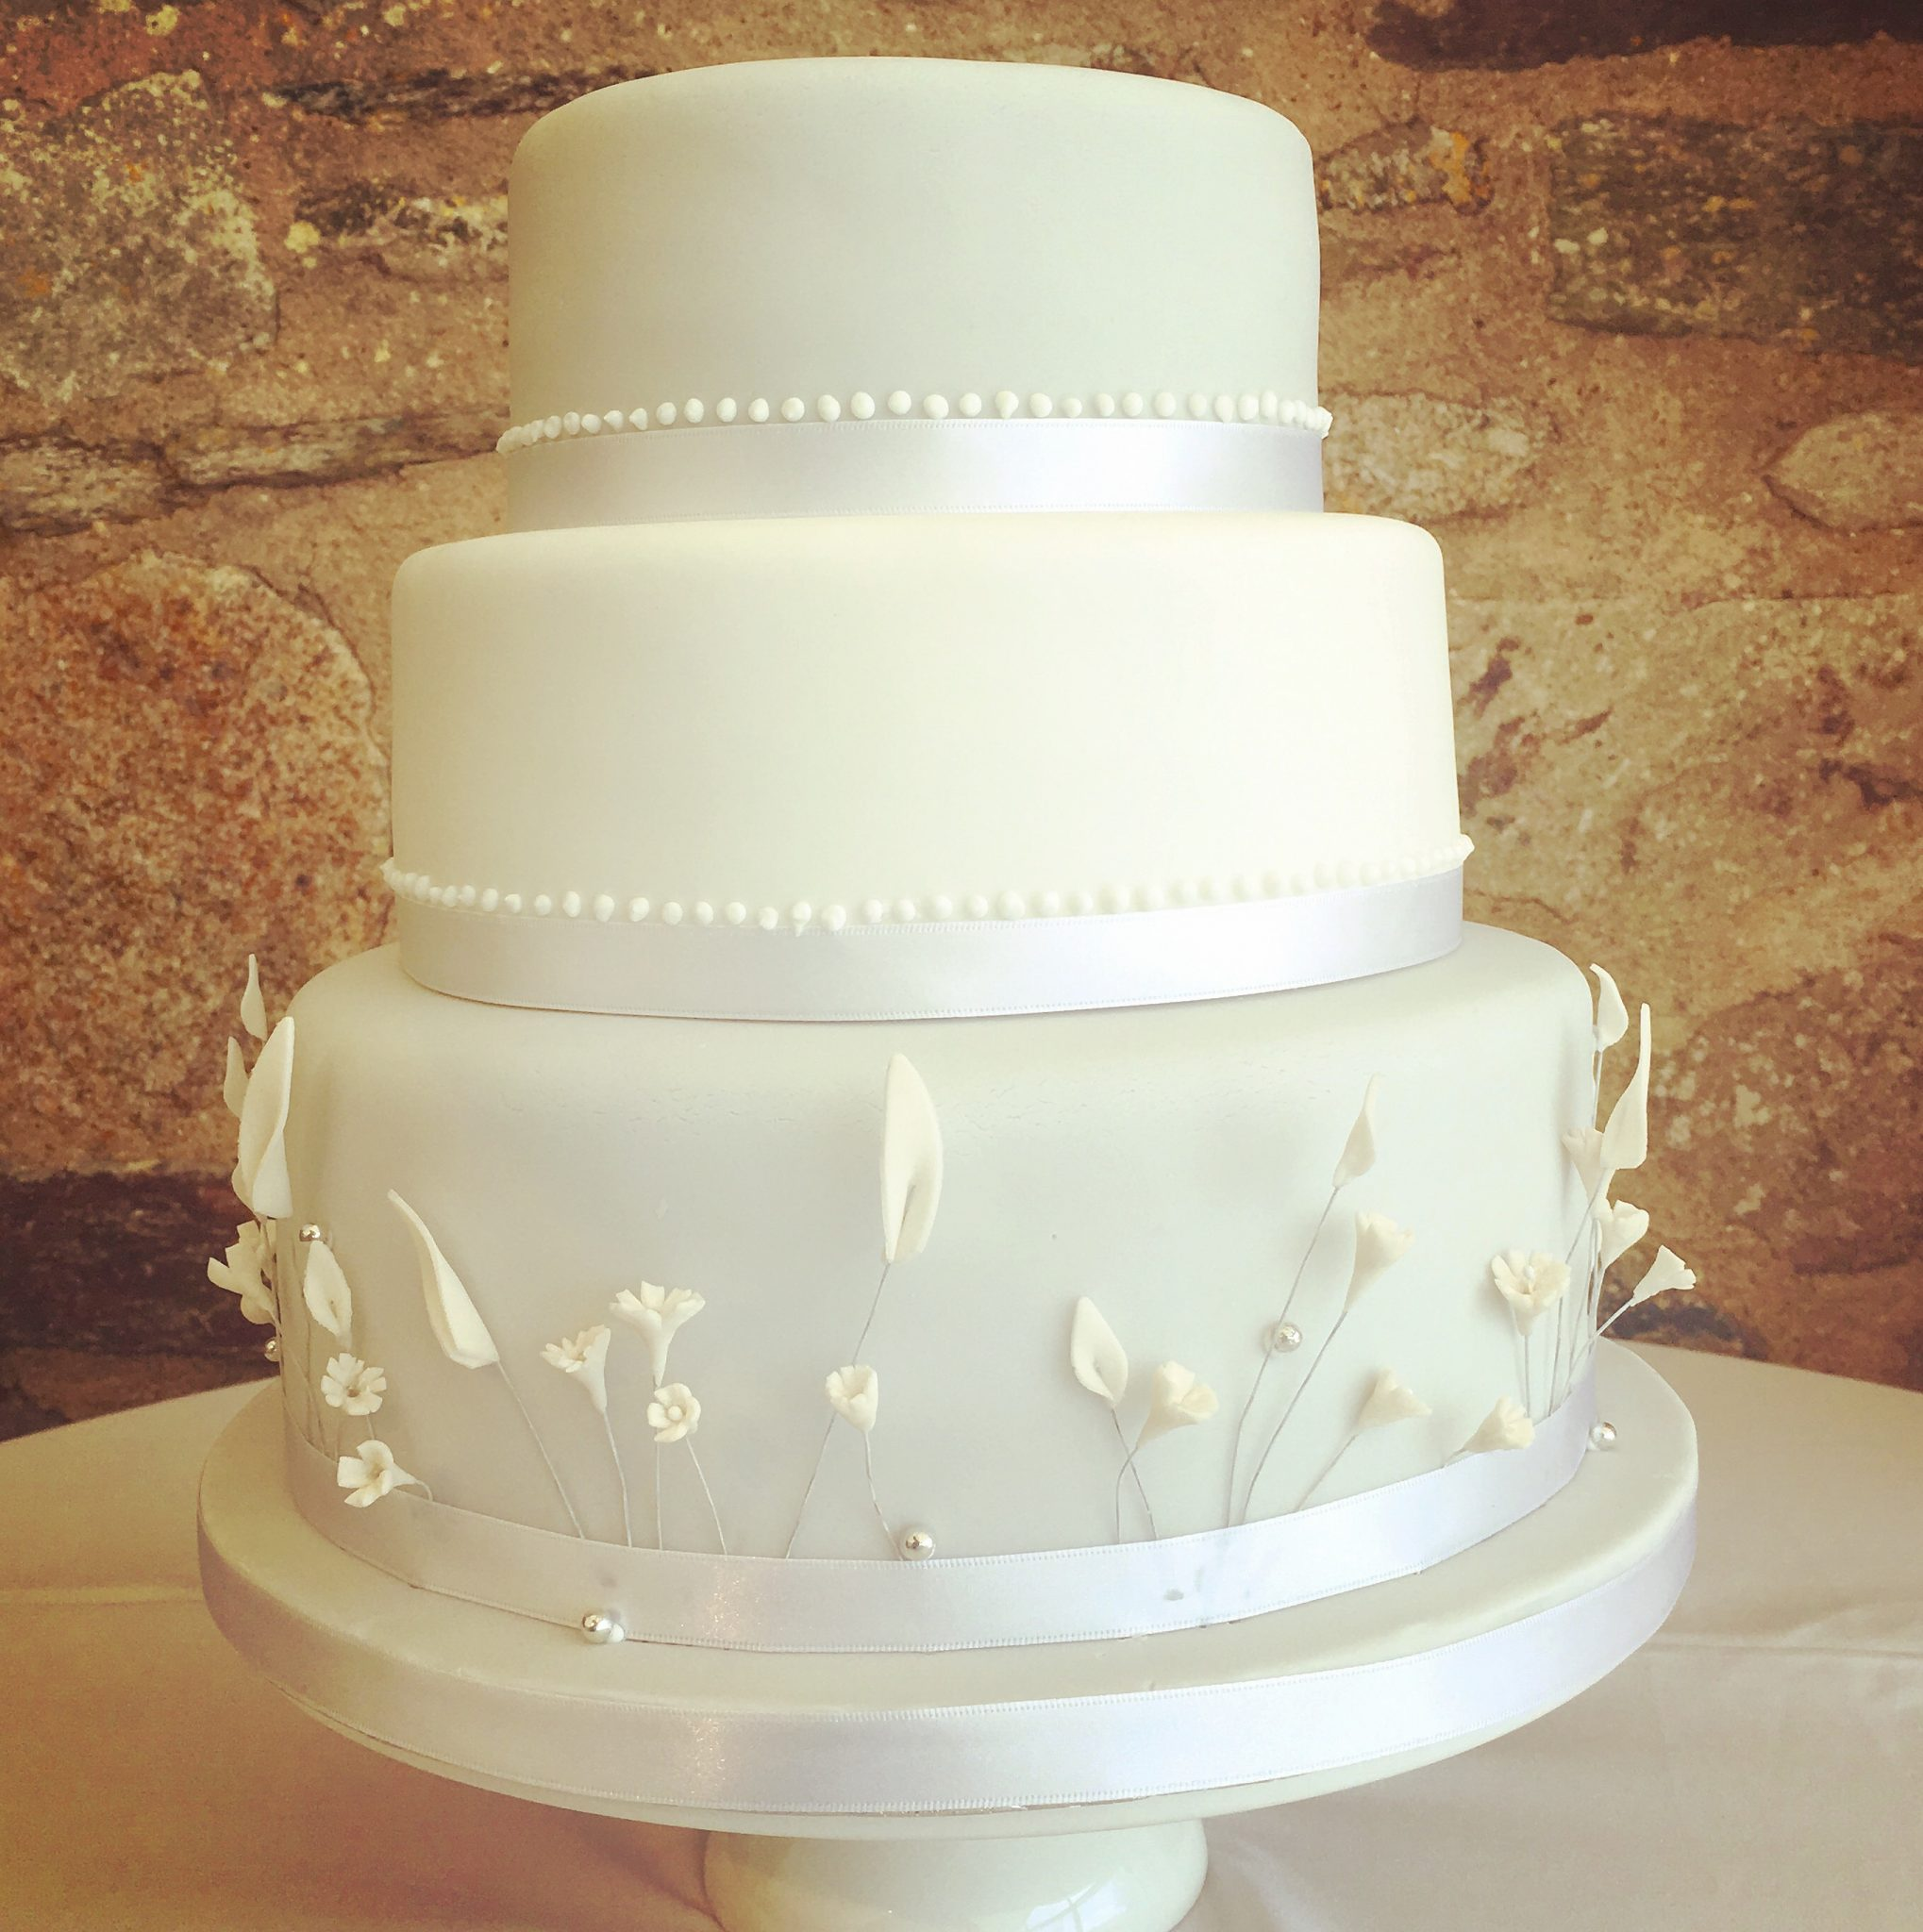 wedding cakes newquay cornwall wedding cakes by trevenna exclusive use weddings cornwall 25086